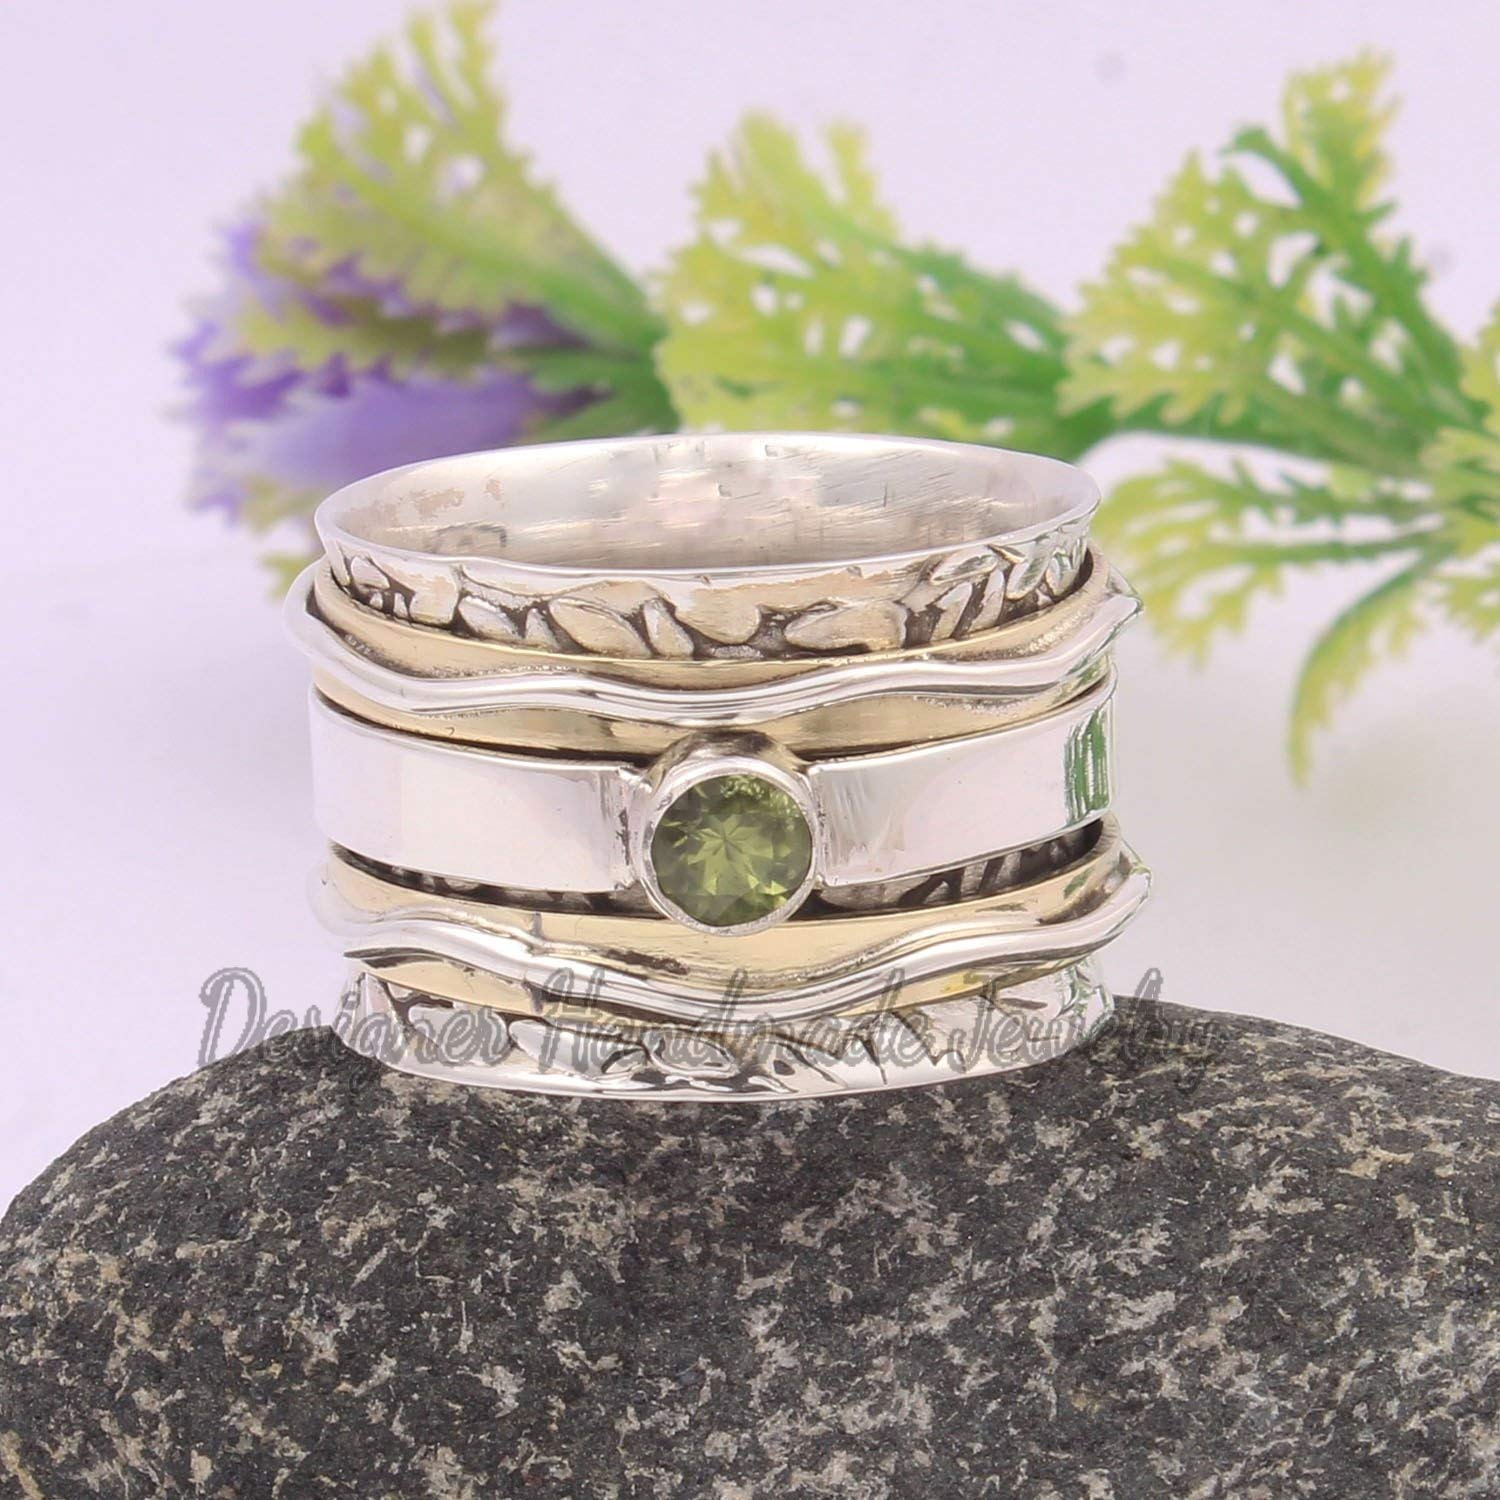 SILVER RING,SPINNER BAND SILVER JEWELRY PERIDOT GEMSTONE RING,SPINNER RING FAMILY RING,SILVER MEDITATION RING,THUMB RING,FIDGET RING